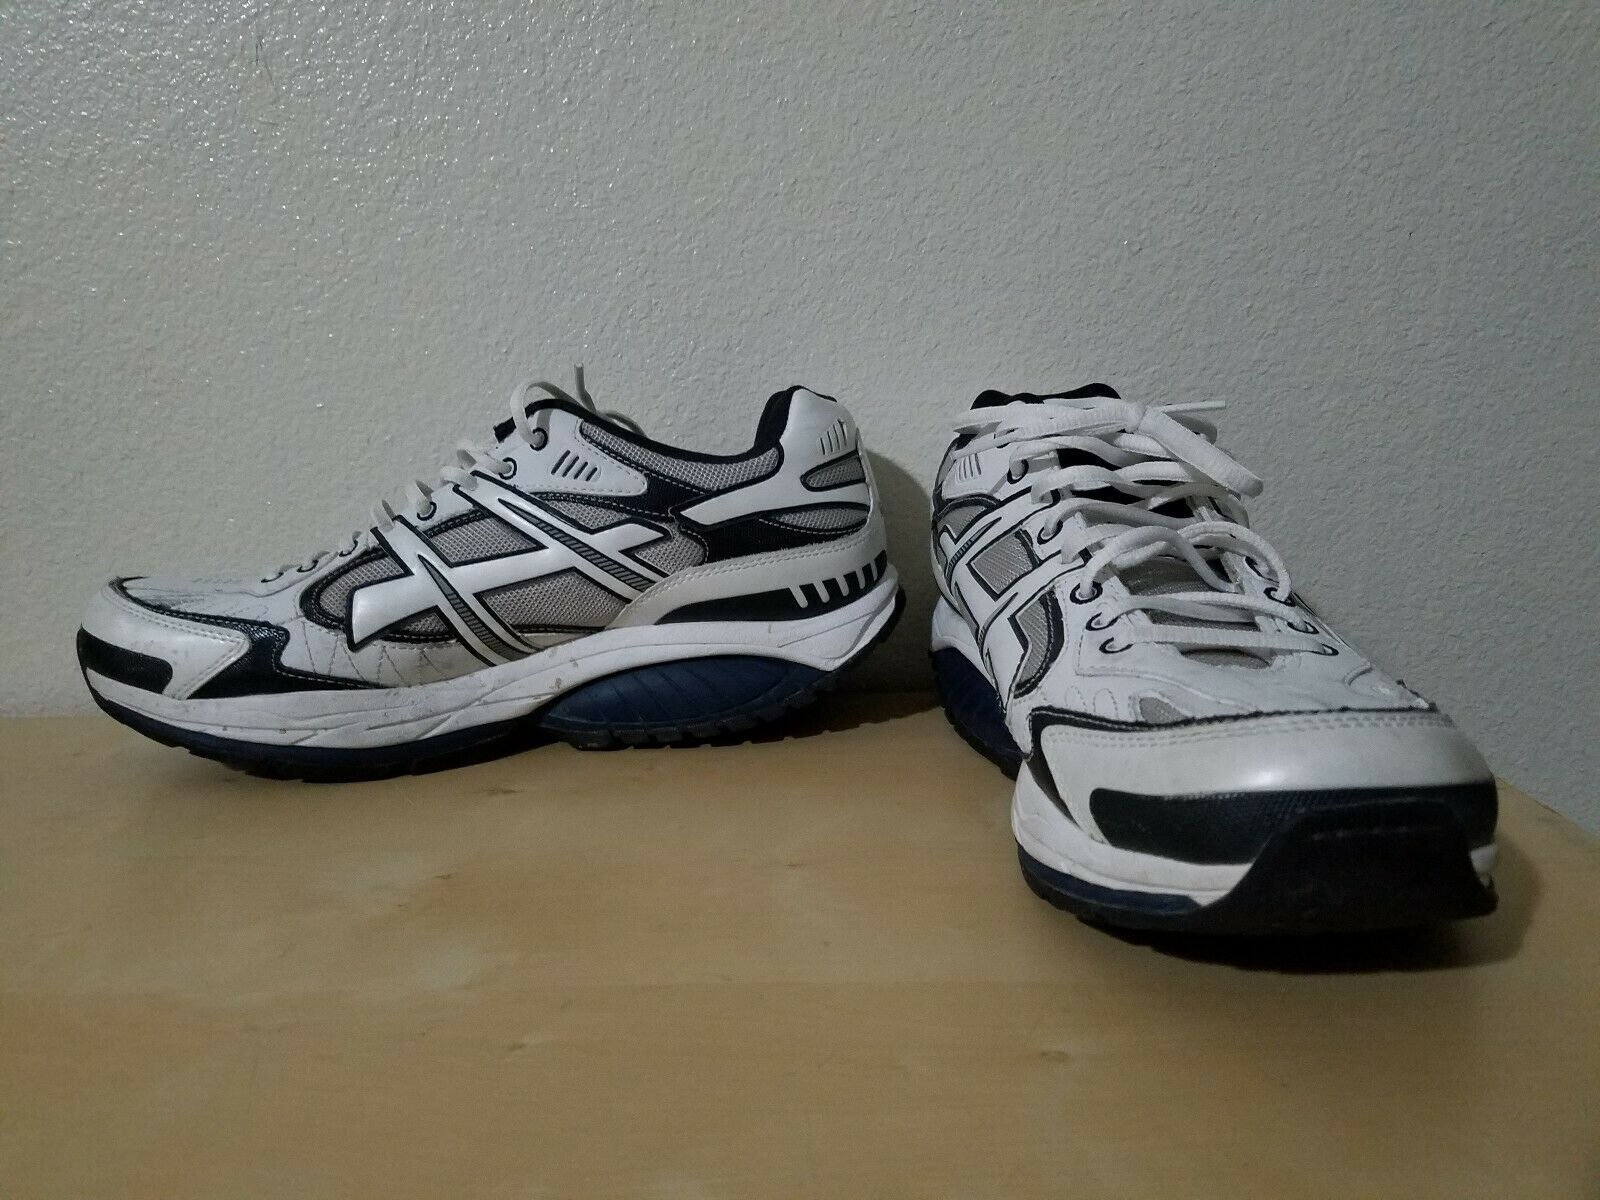 Skechers Shape Ups SRT Walking shoes Men Size 11 Toning Athletic shoes 52041